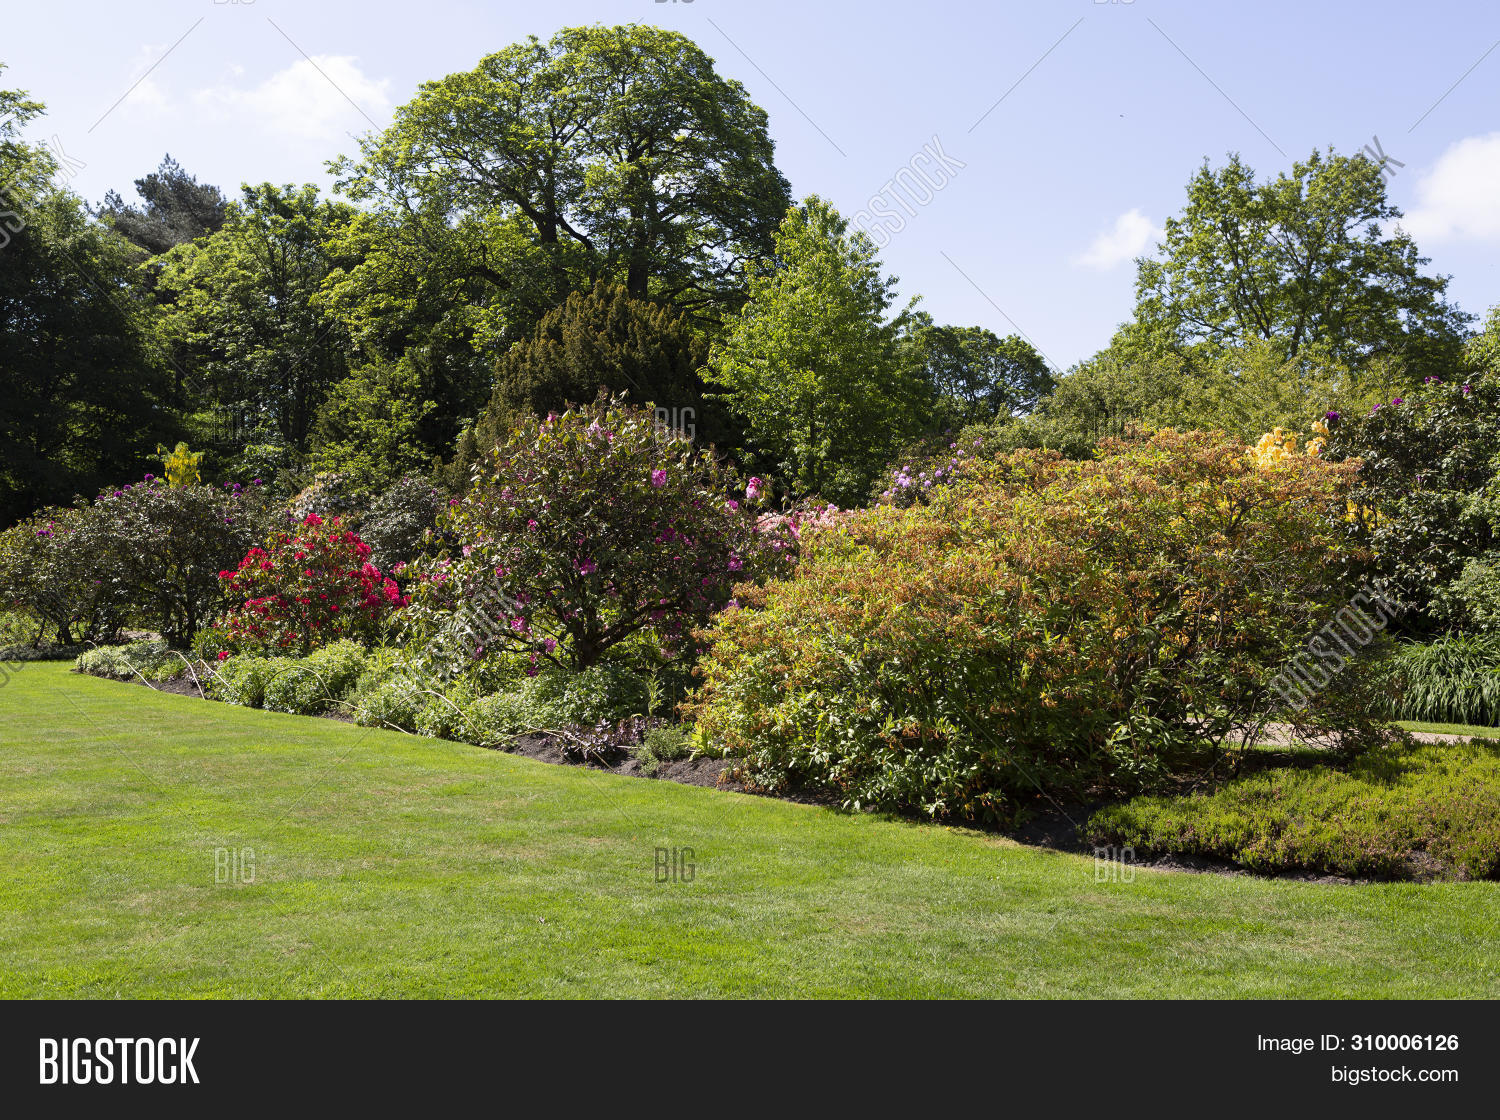 Beautiful Garden Image Photo Free Trial Bigstock